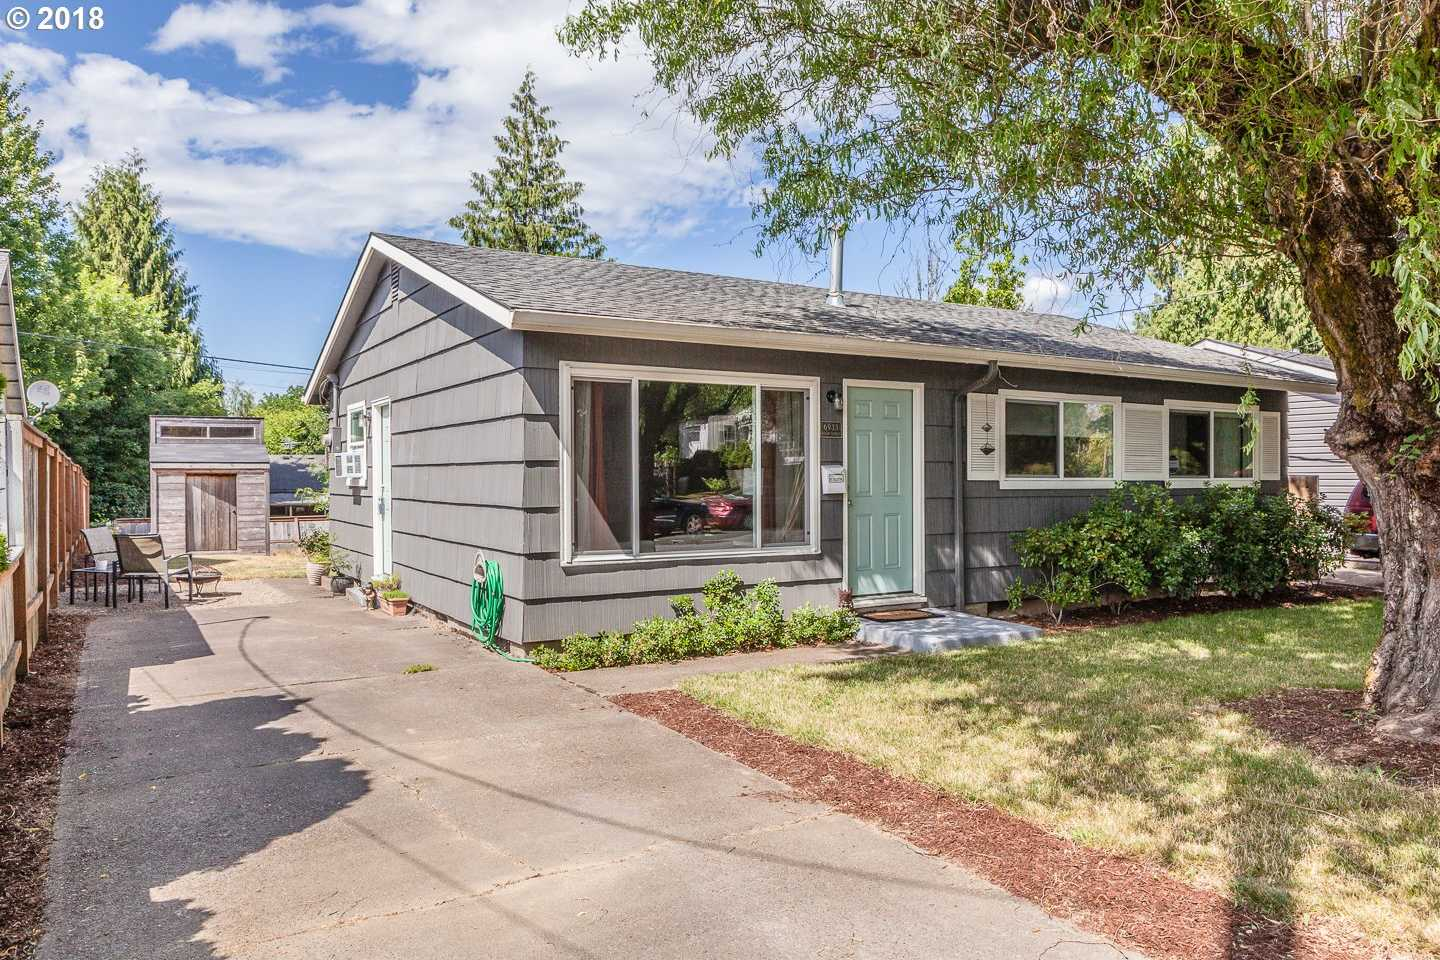 $349,900 - 3Br/1Ba -  for Sale in St. Johns, Portland